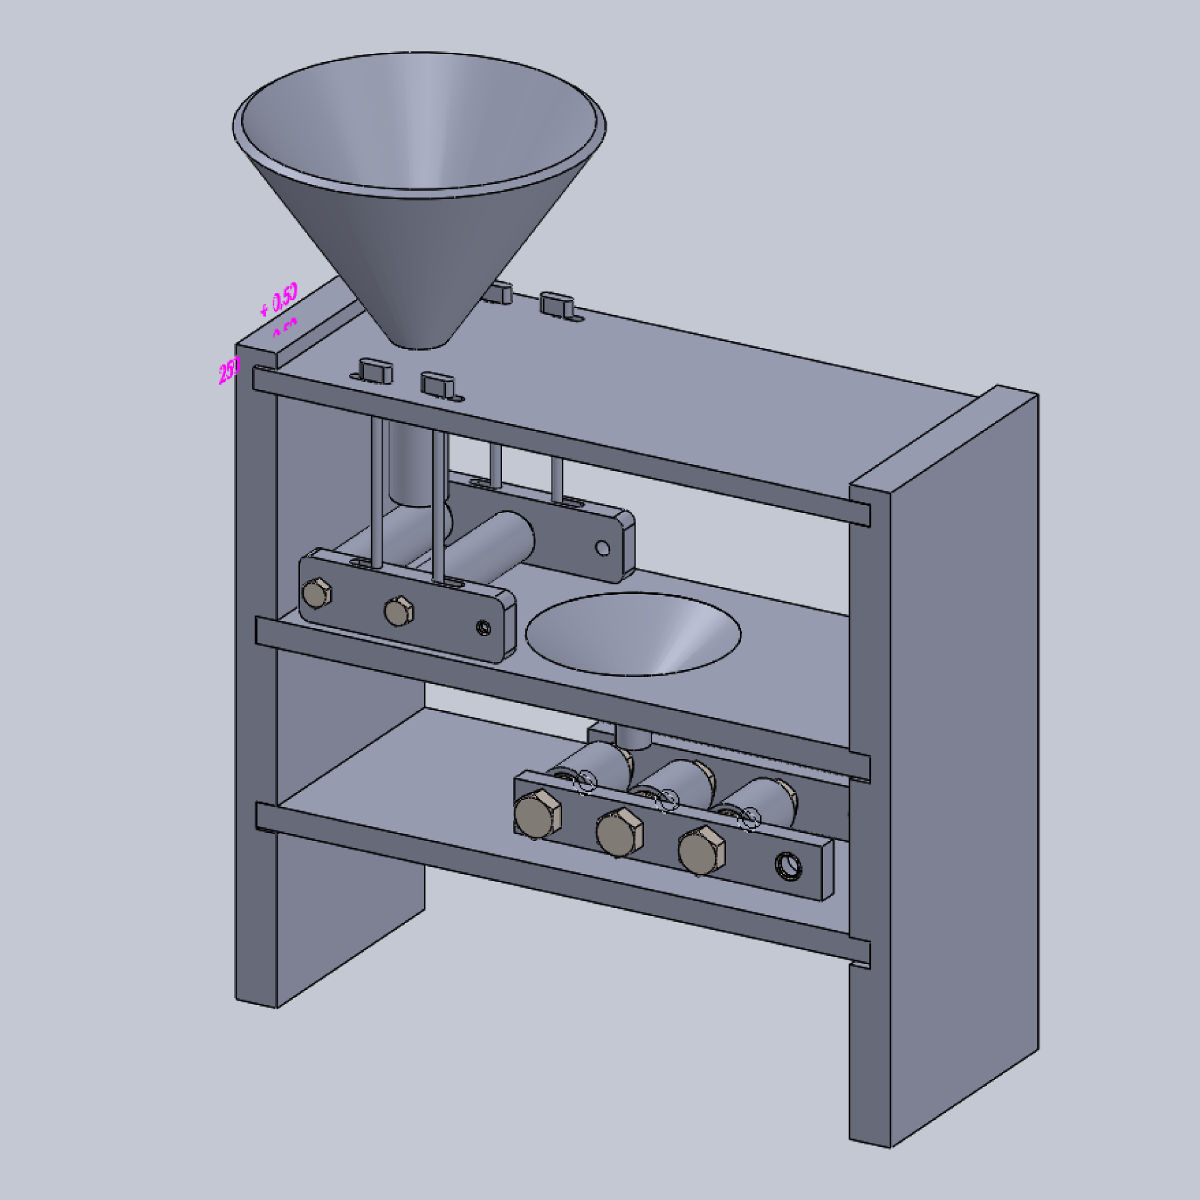 Open Source Coffee Sorter (Version 1.0)